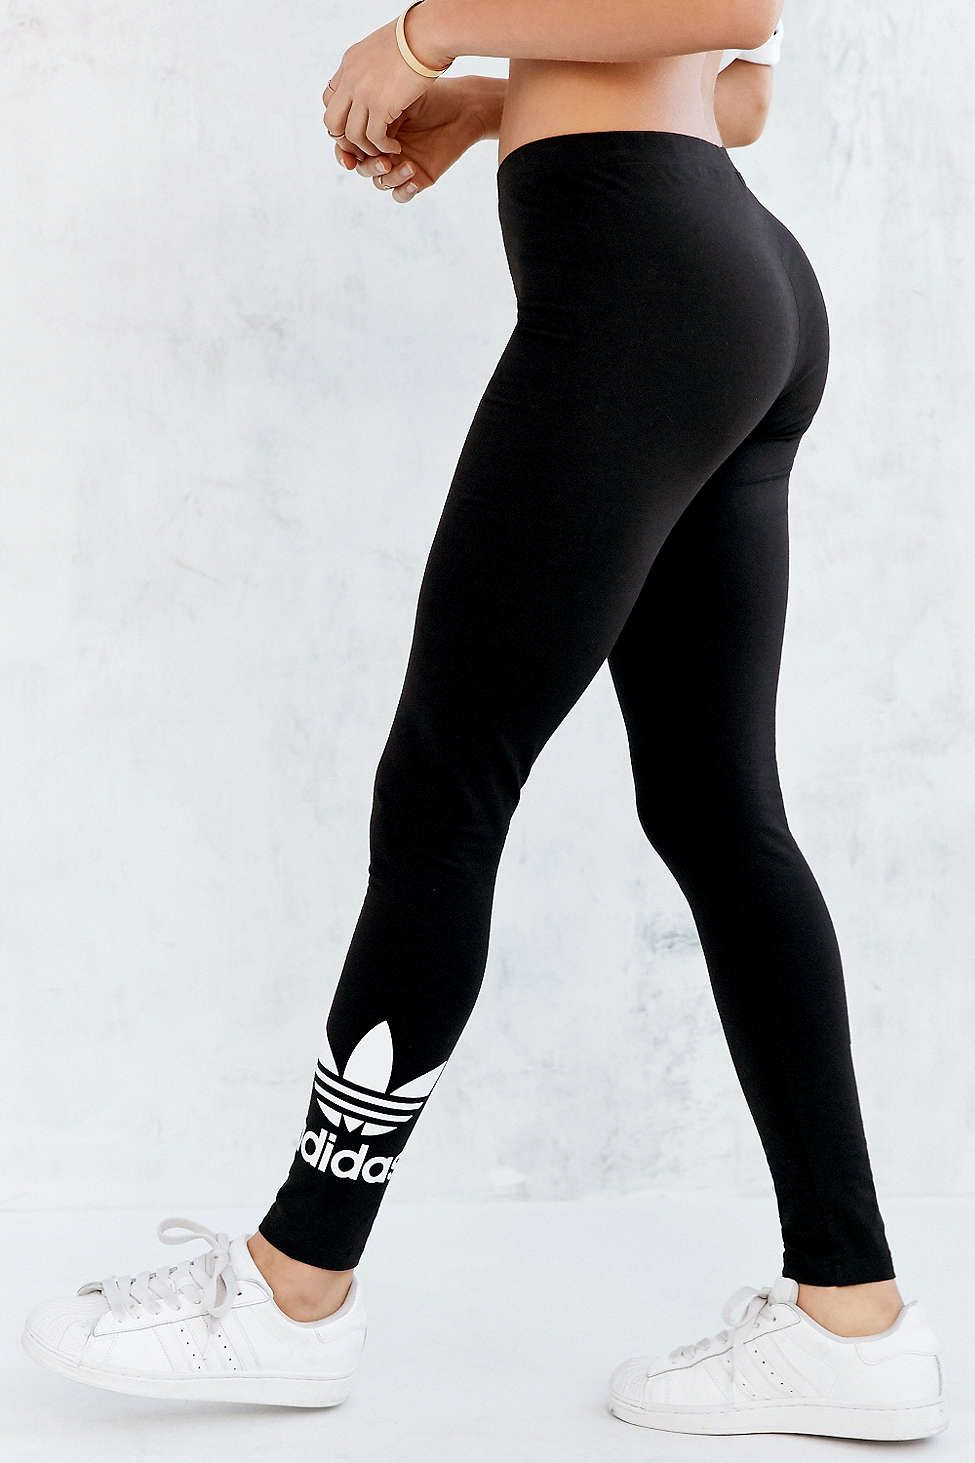 adidas originals trefoil legging adidas urban outfitters and legs. Black Bedroom Furniture Sets. Home Design Ideas